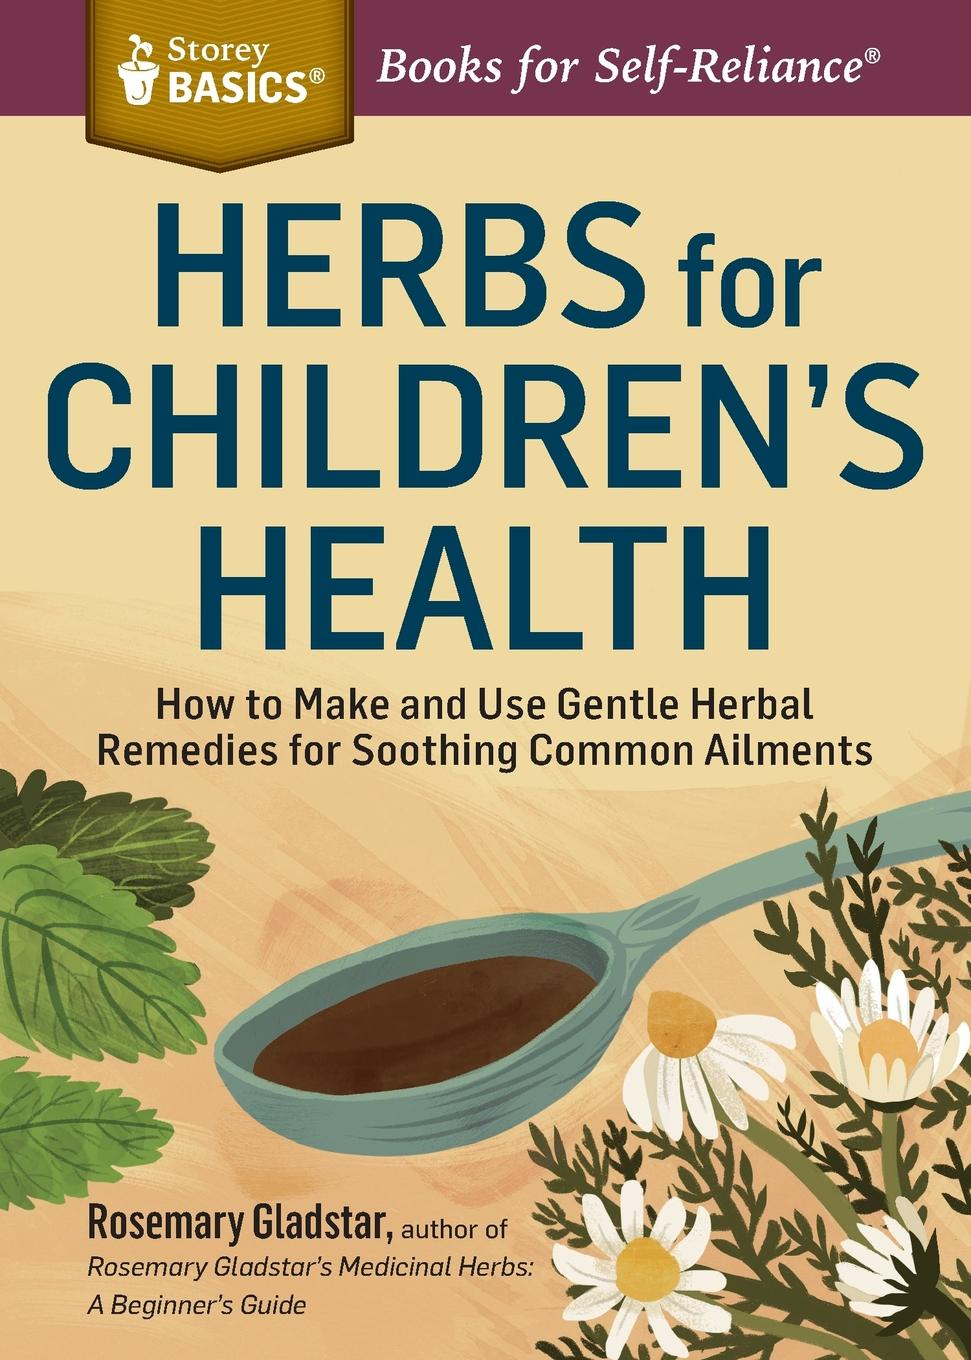 Фото - Rosemary Gladstar Herbs for Children's Health. How to Make and Use Gentle Herbal Remedies for Soothing Common Ailments. A Storey BASICS. Title mark kopecky managing manure how to store compost and use organic livestock wastes a storey basics title